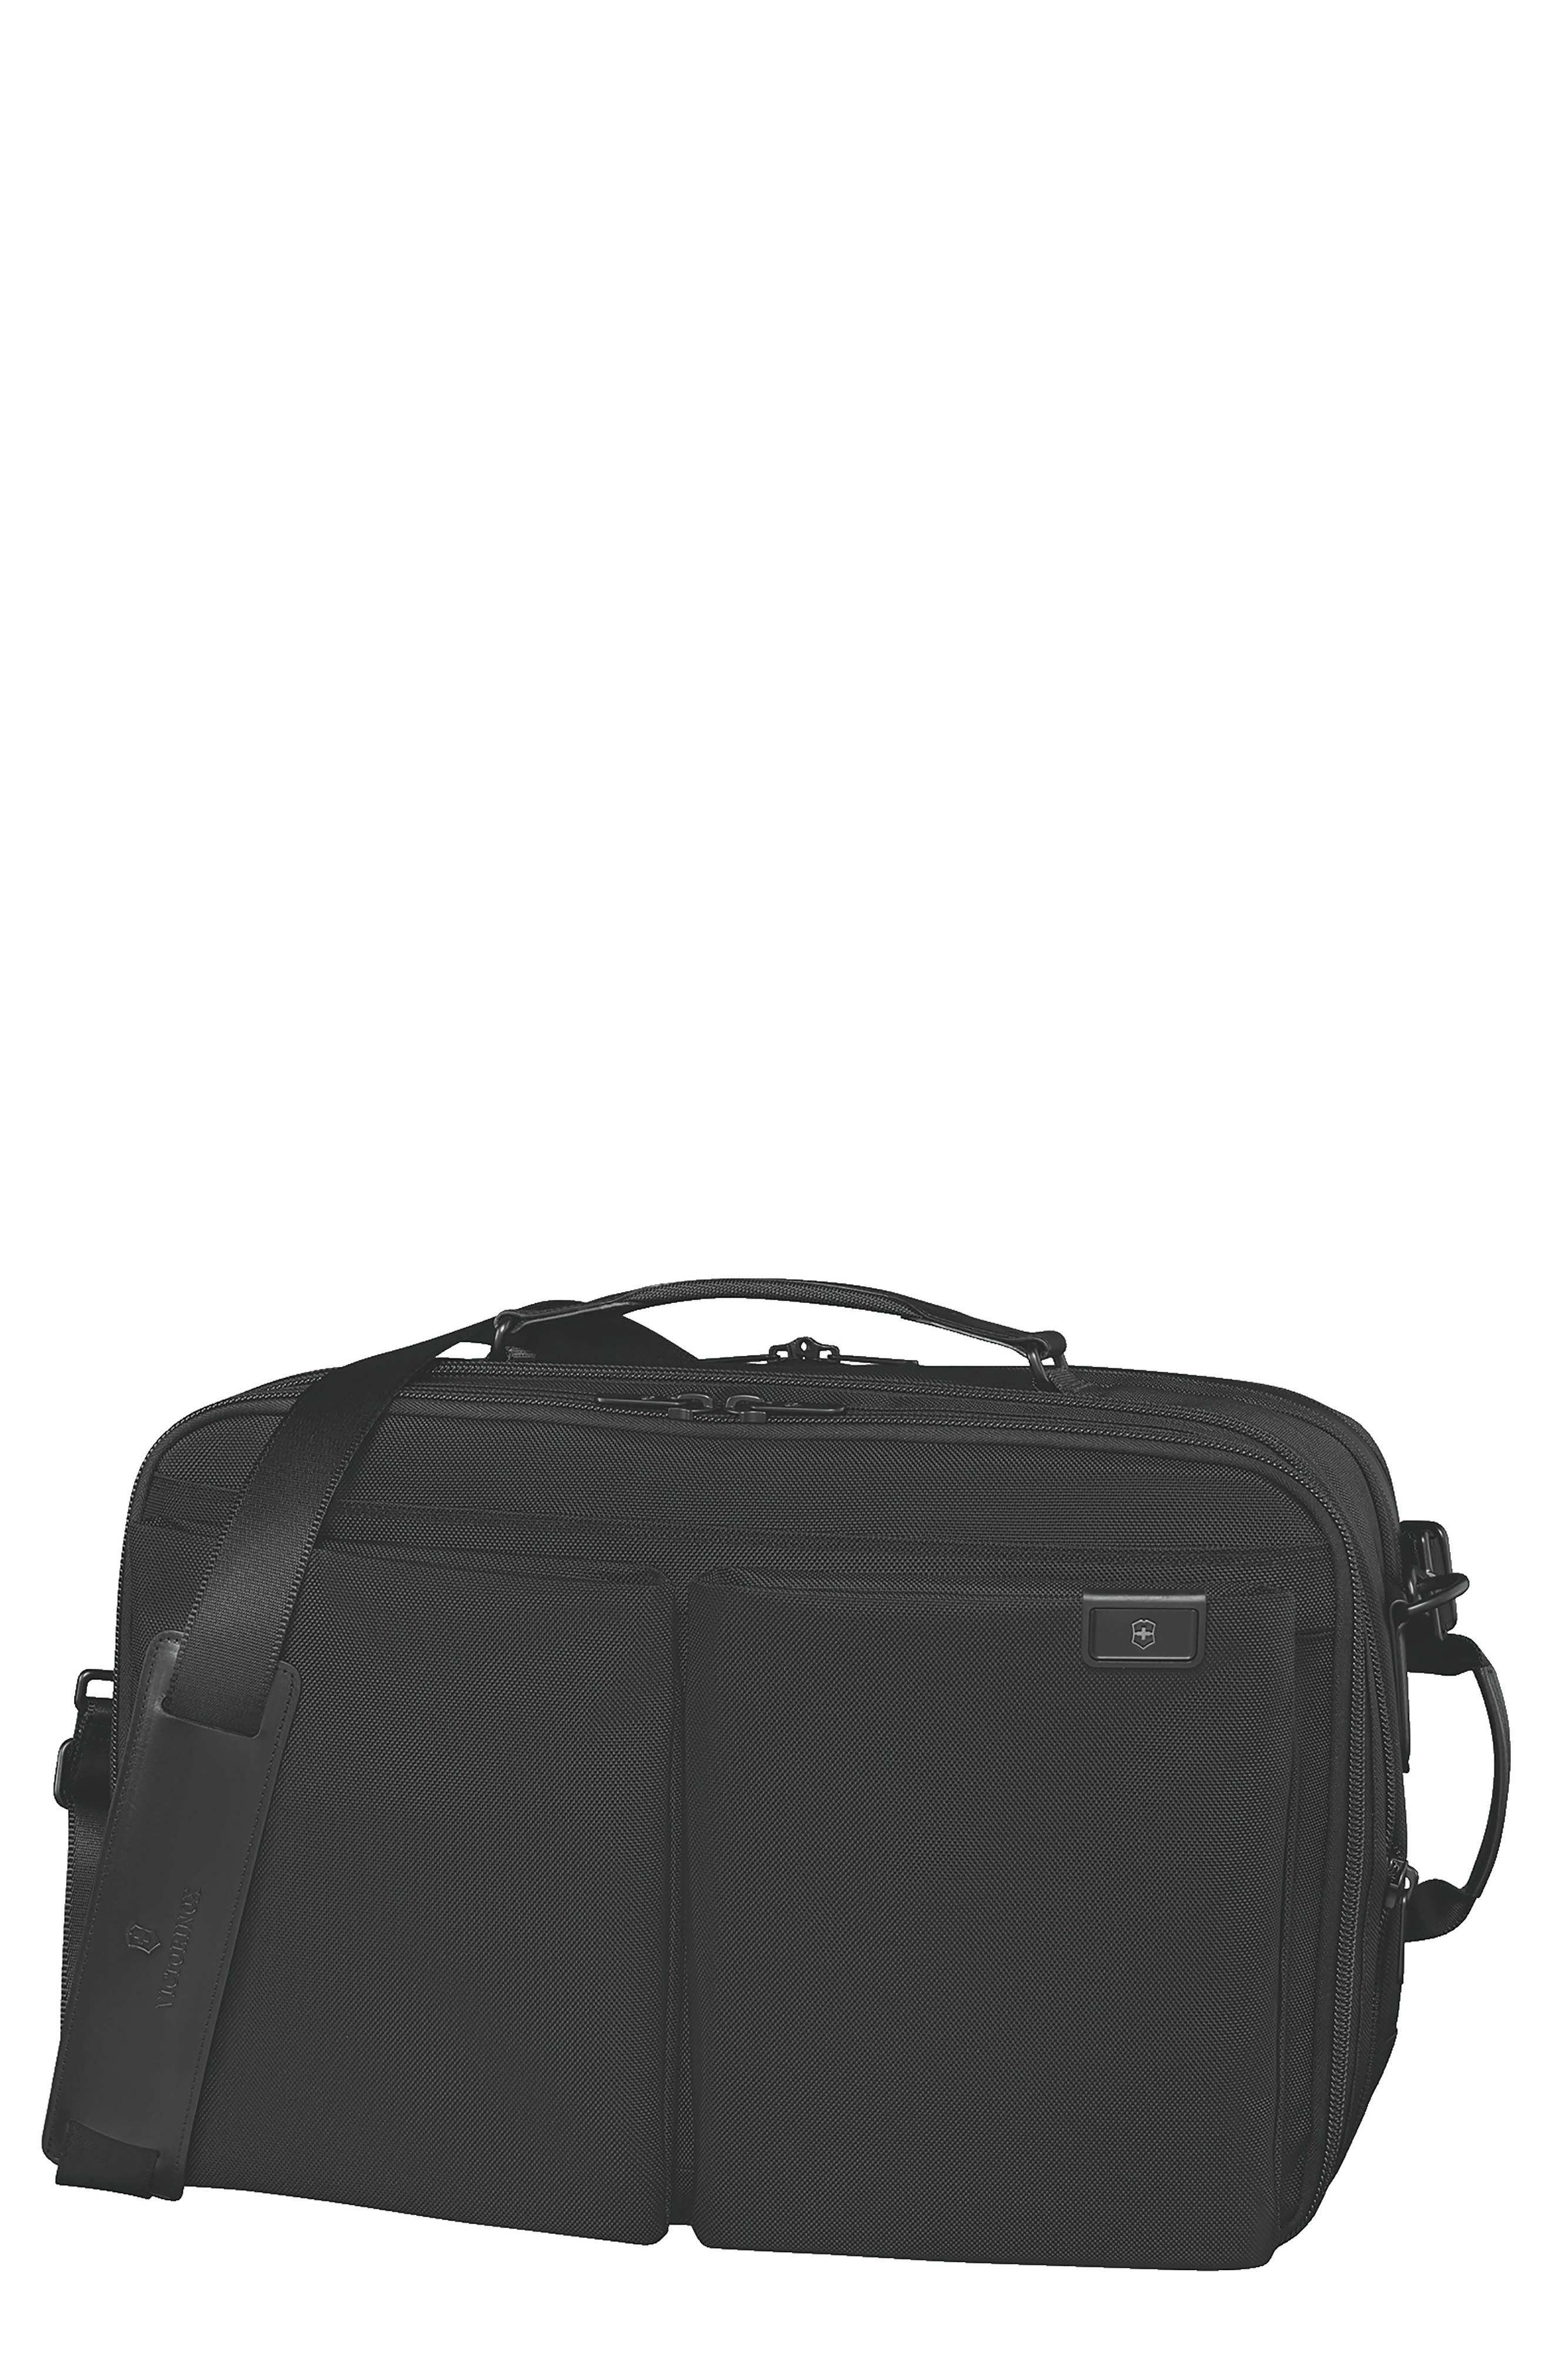 Lexicon 2.0 Convertible Backpack,                         Main,                         color, 001